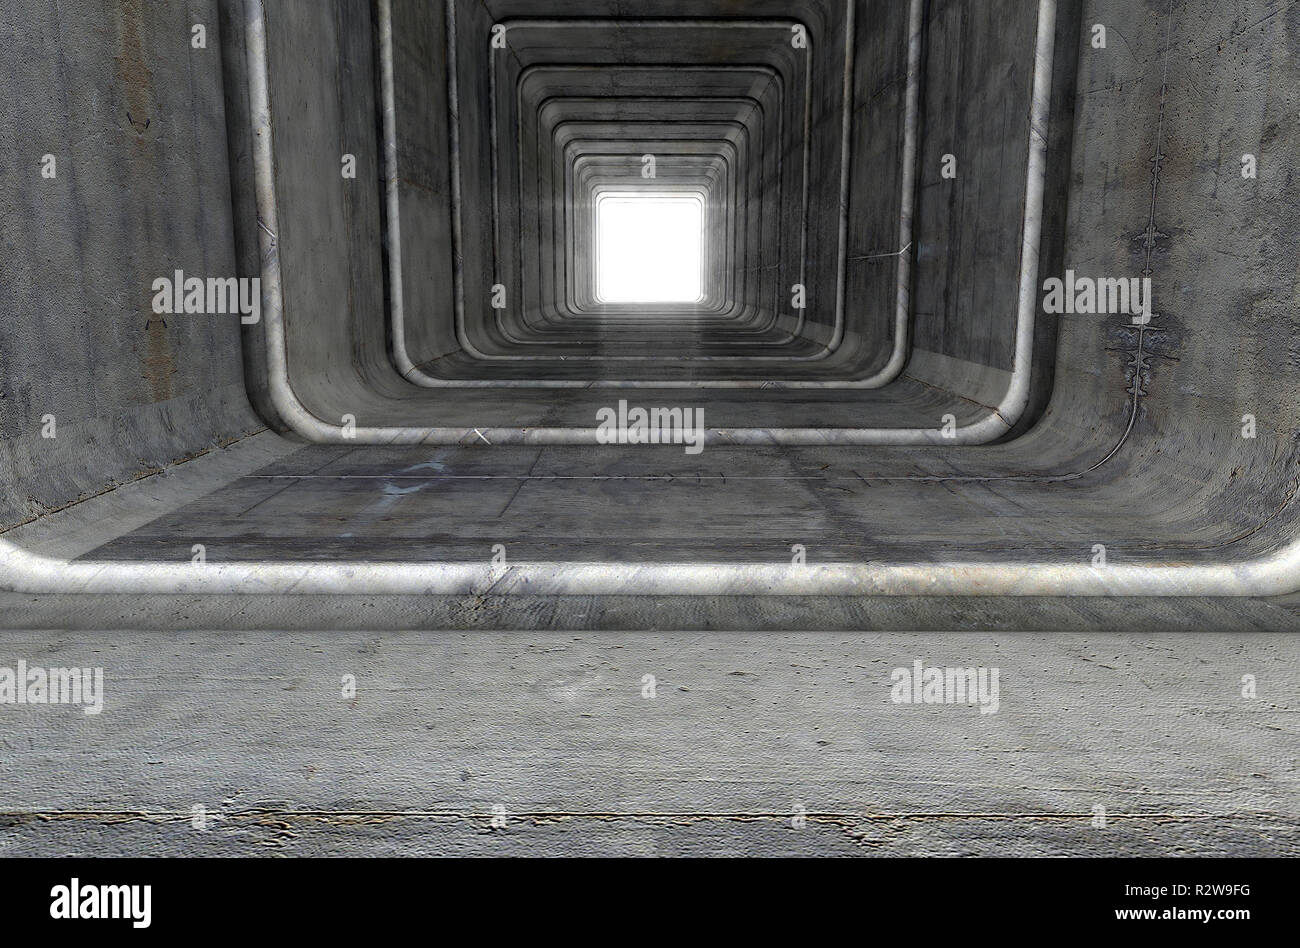 A look down a concrete tunnel made out of square geometric shapes with a light in the distance at the far end - 3D render Stock Photo